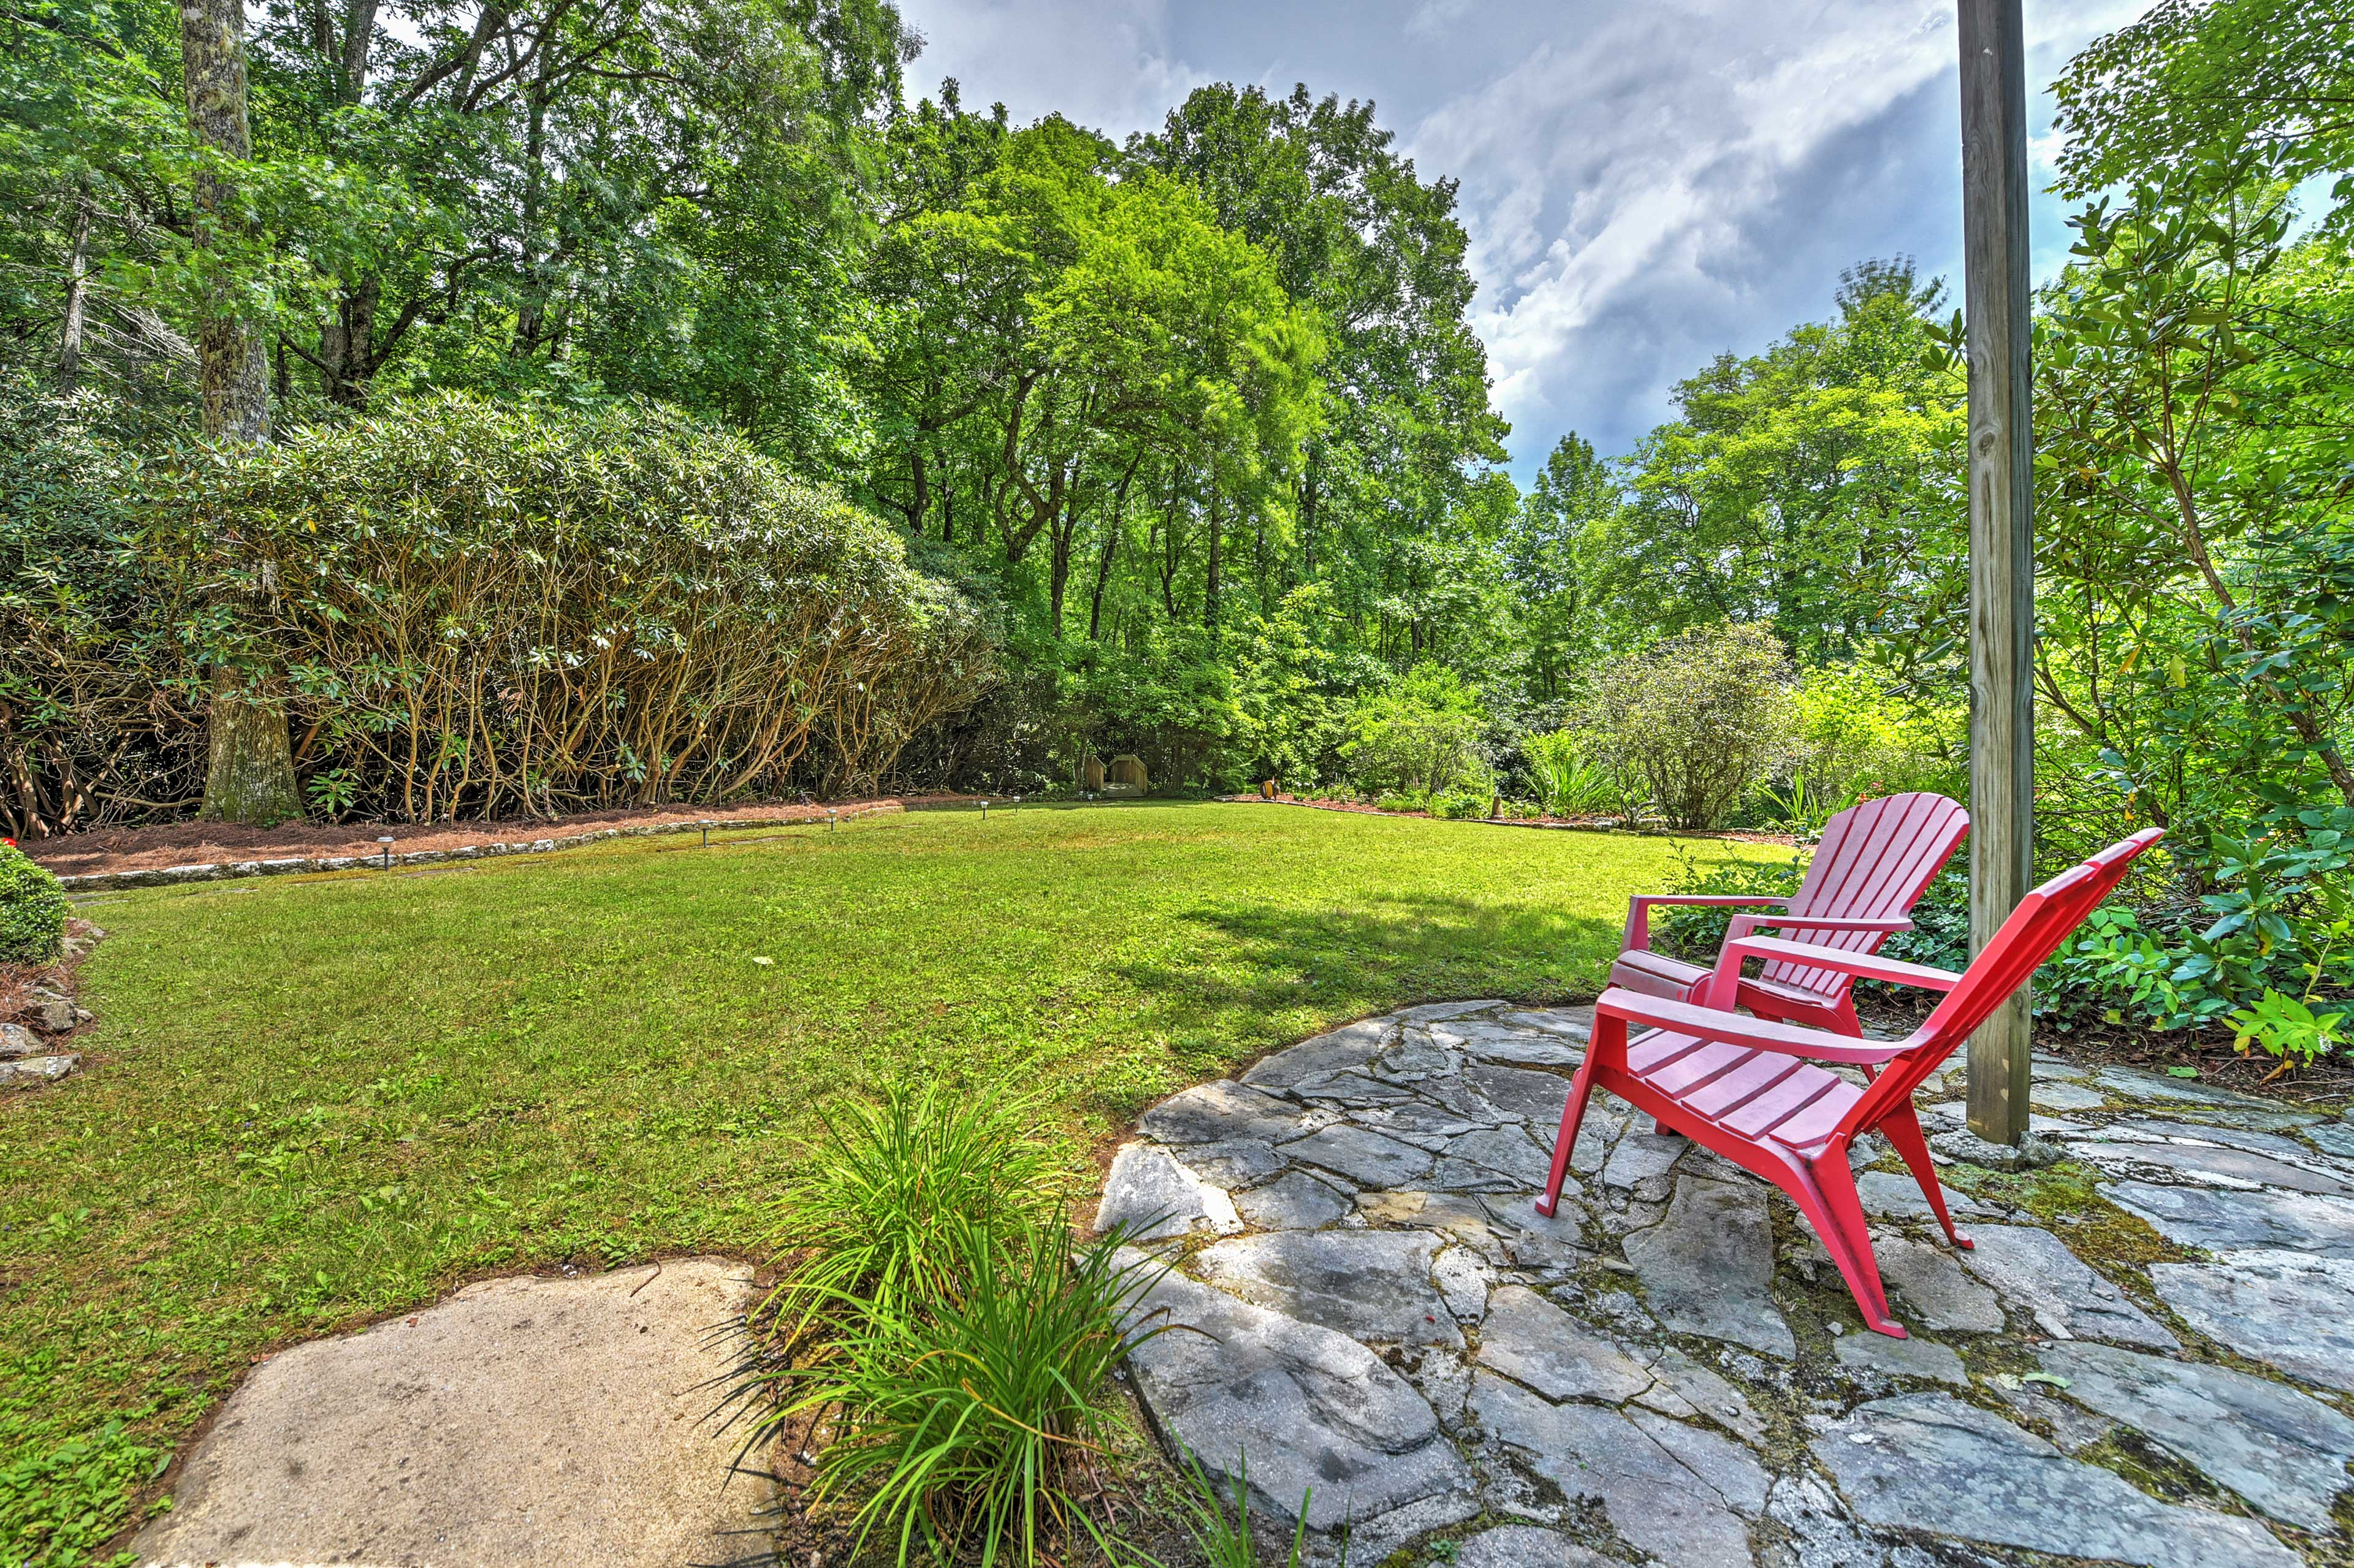 Adirondack chairs on the stone sitting area provide more seating.